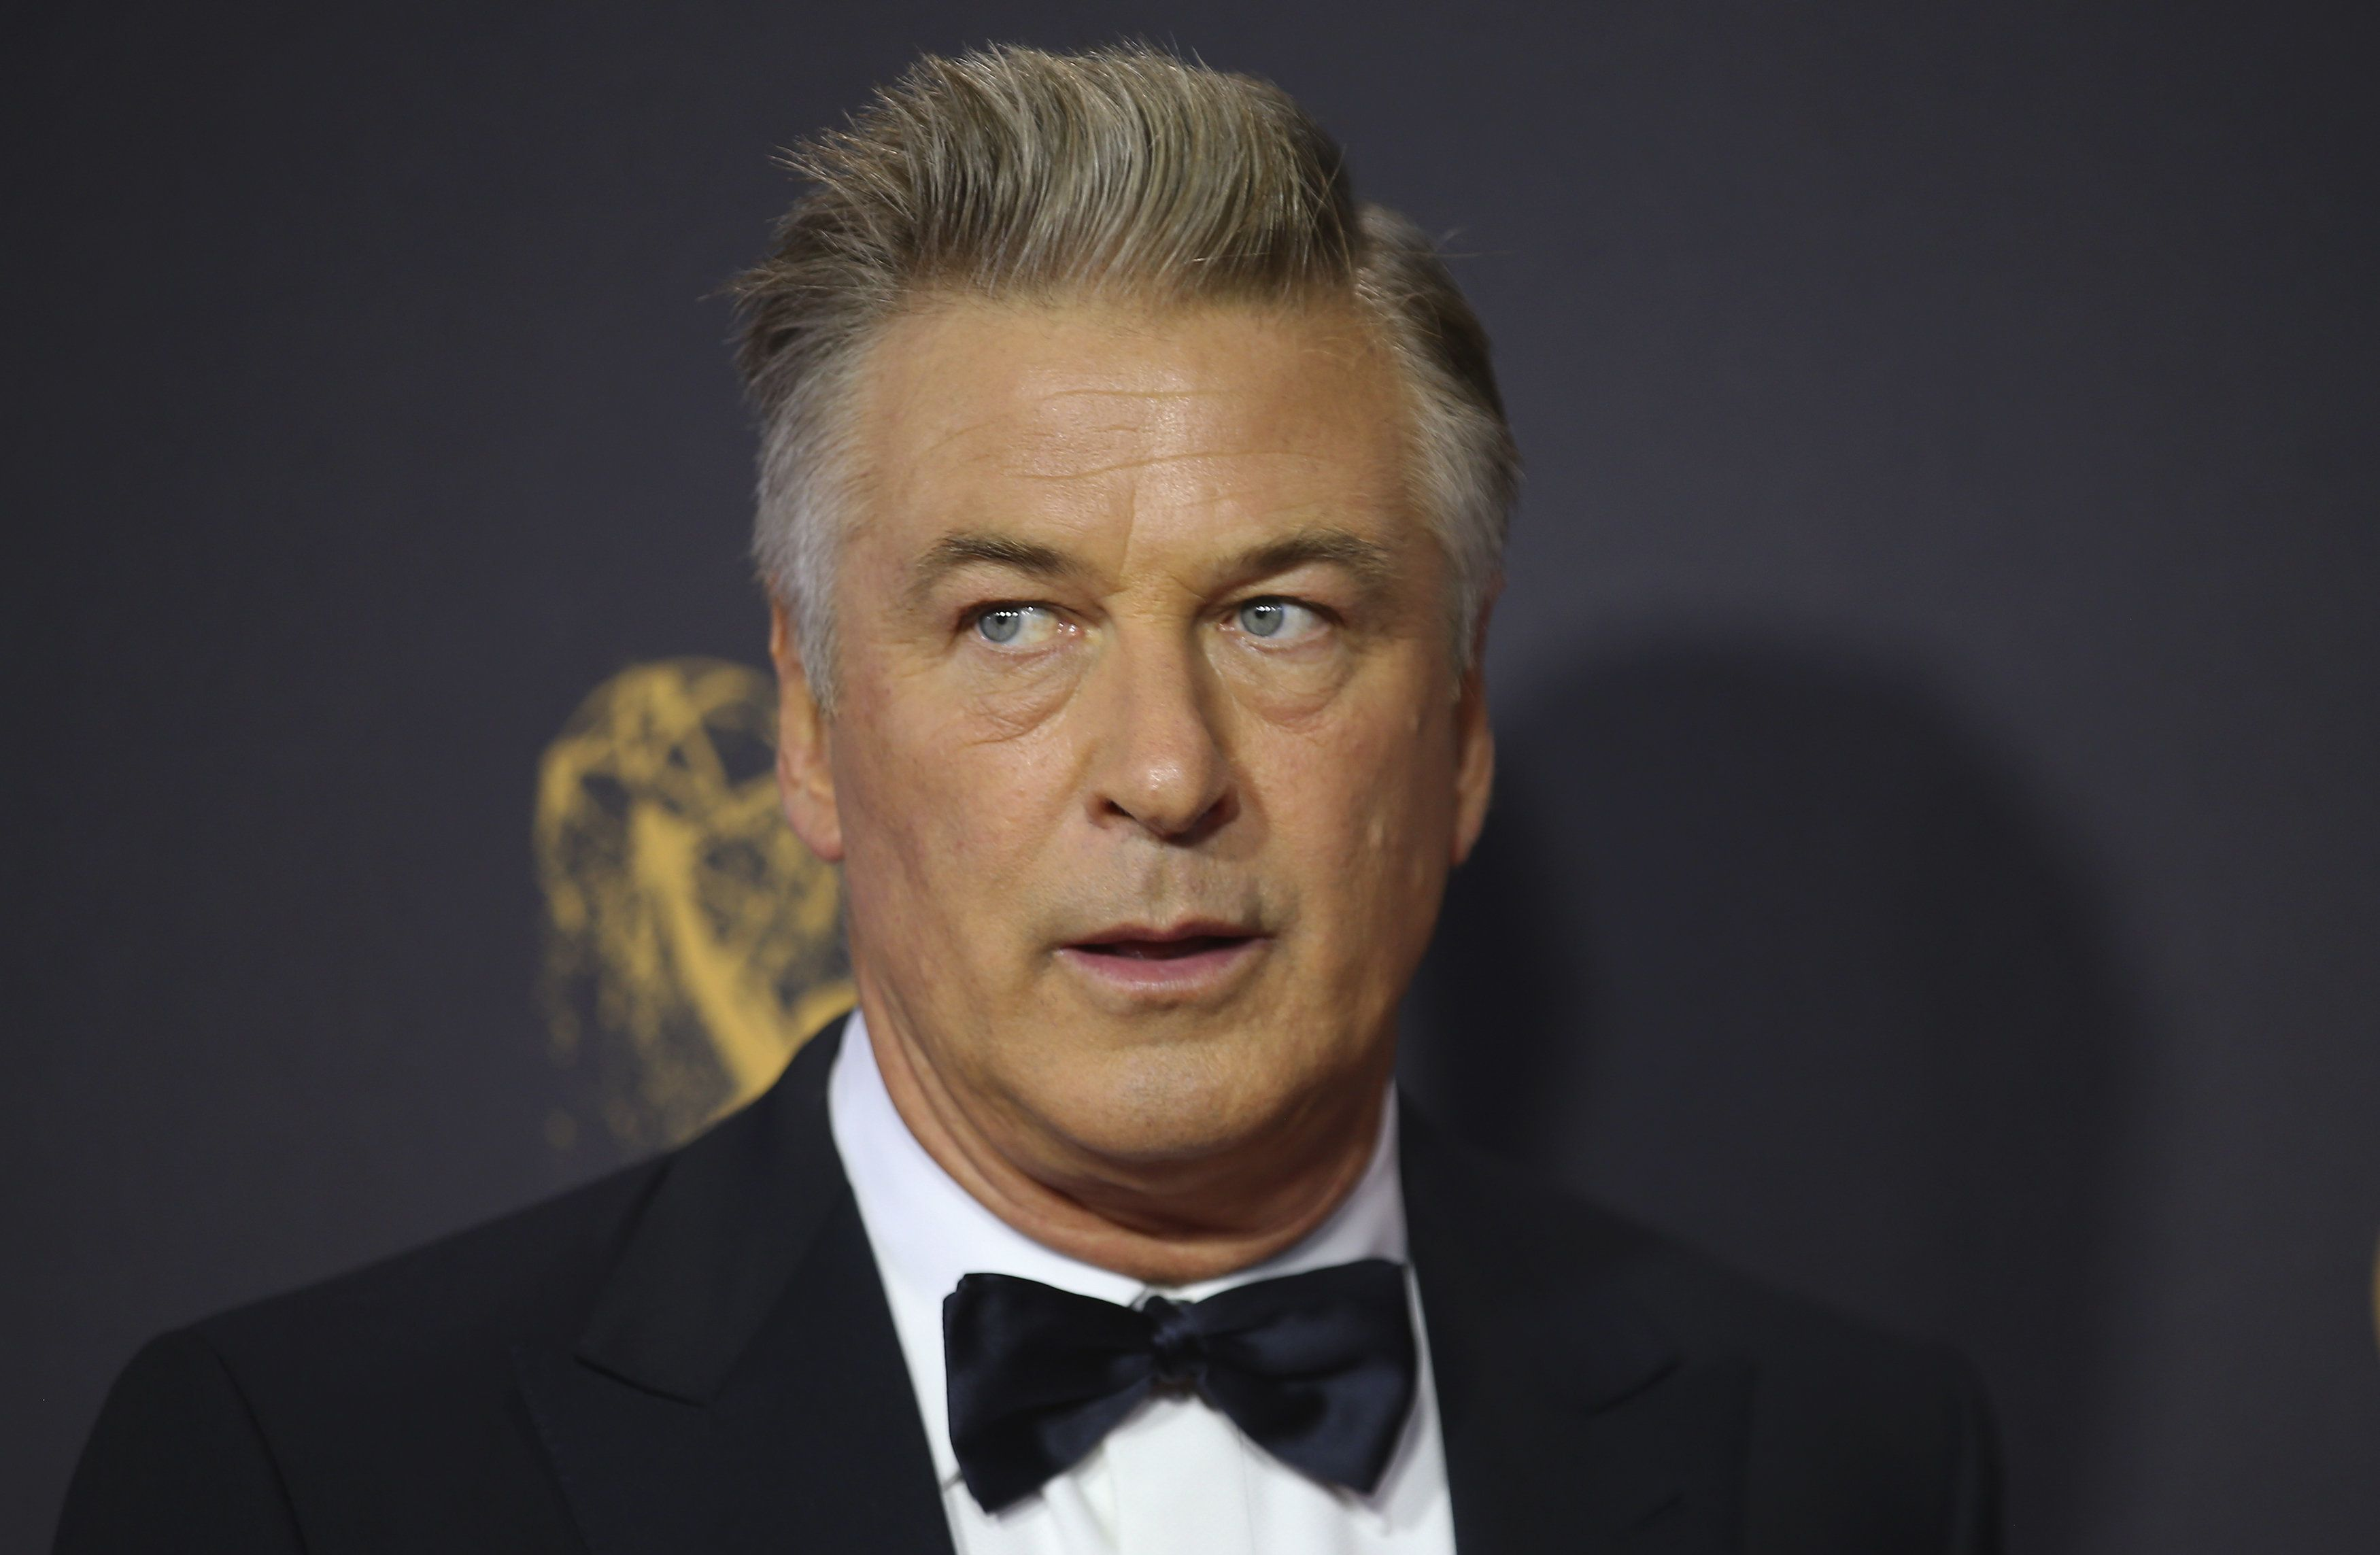 69th Primetime Emmy Awards – Arrivals – Los Angeles, California, U.S., 17/09/2017 -  Alec Baldwin. REUTERS/Mike Blake